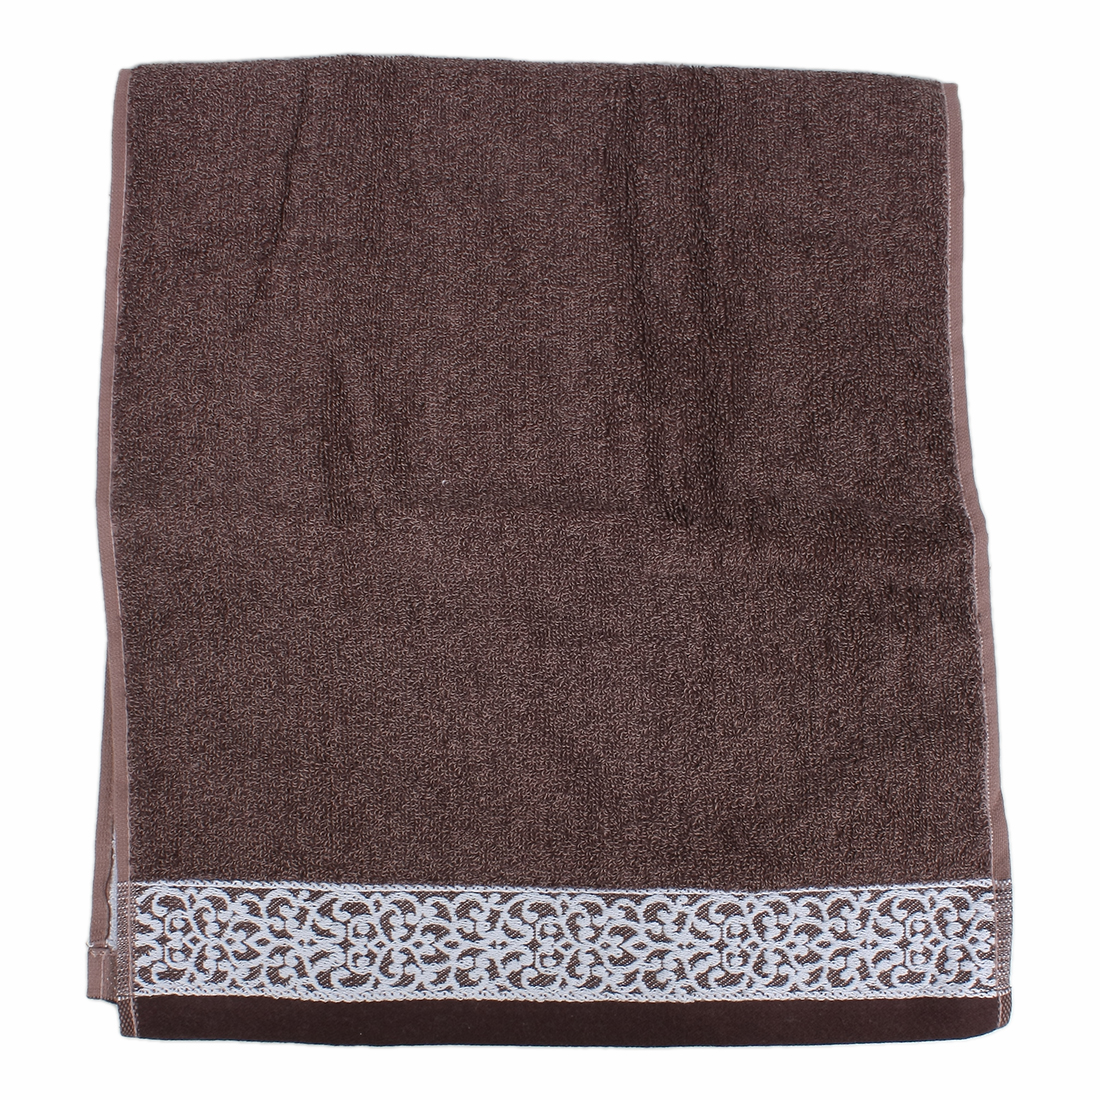 Luxury 100% Super Soft Combed Cotton Towel 35 x 74cm Coffee Color